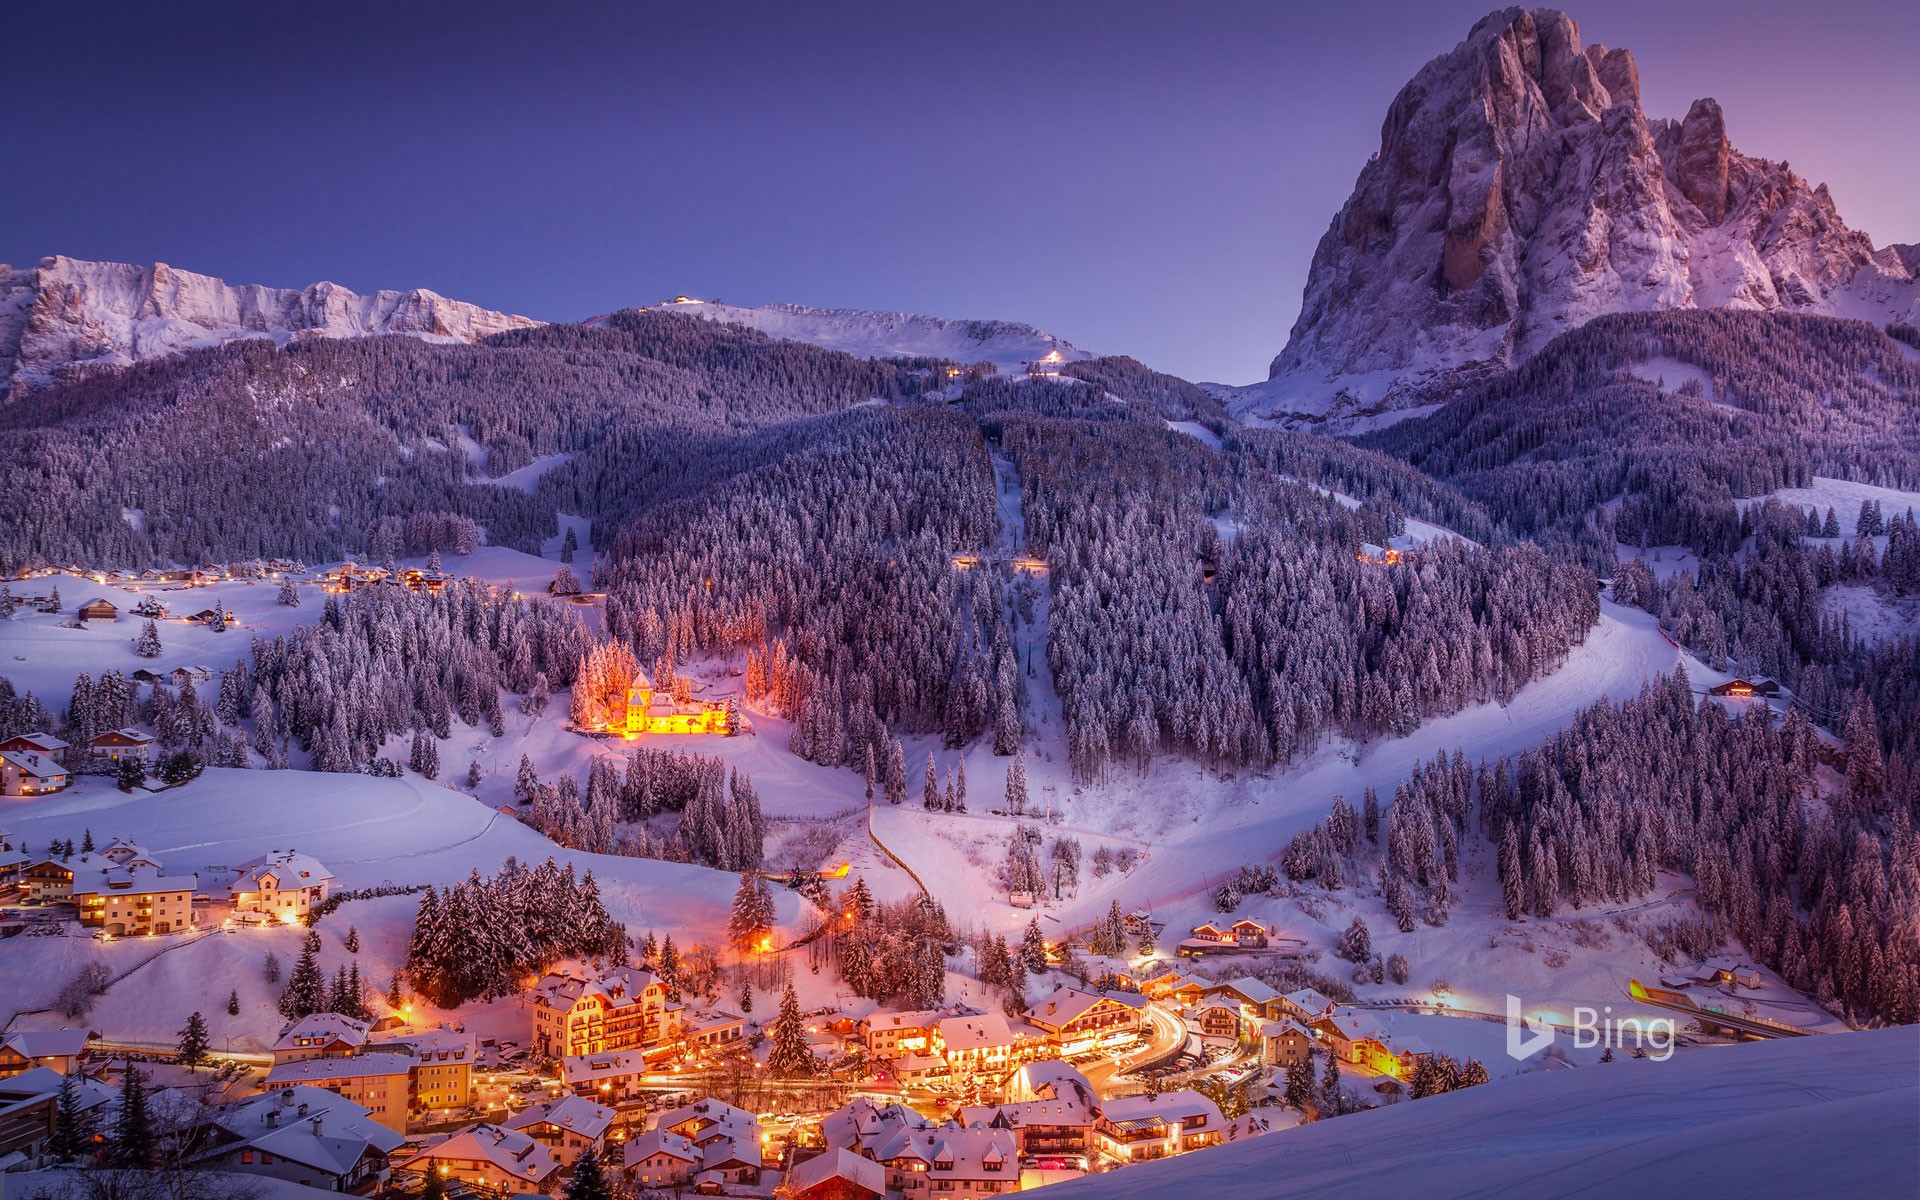 Sunset in Val Gardena in the Dolomites of South Tyrol, Italy